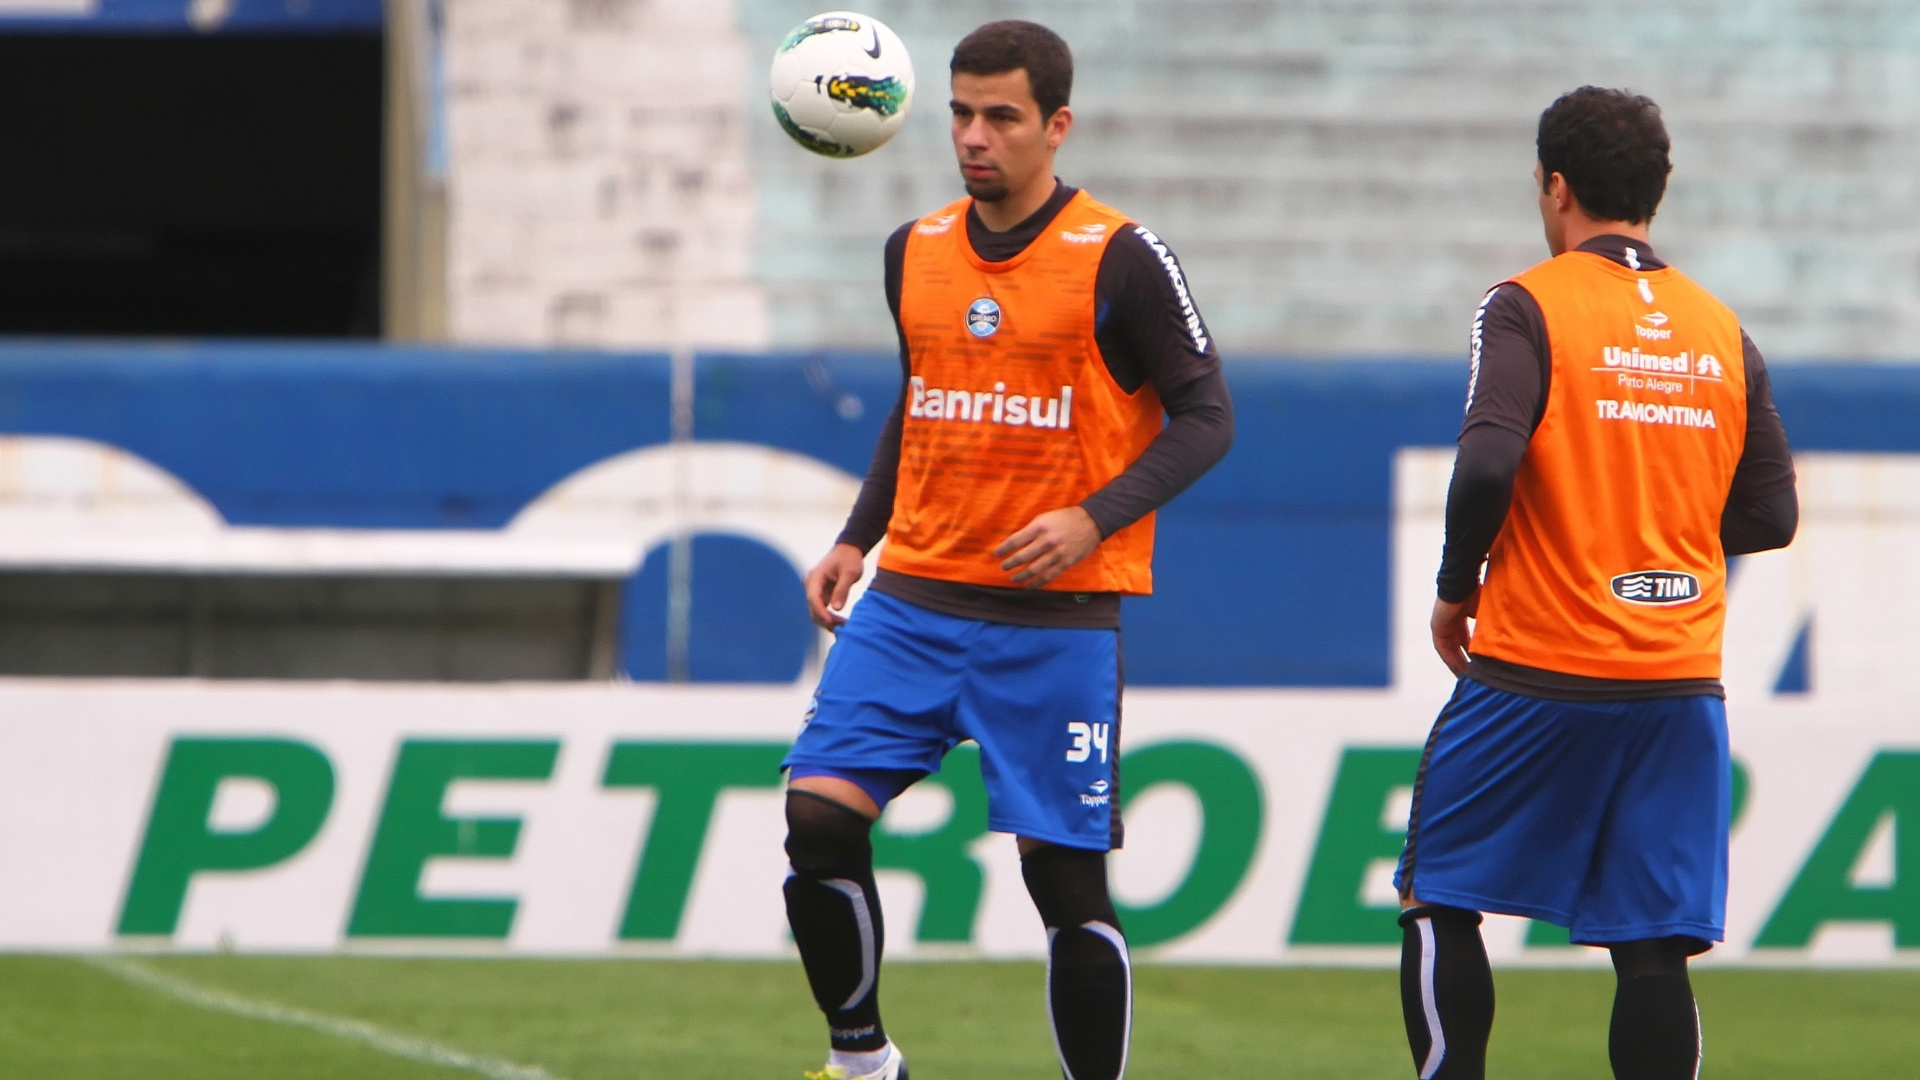 Atacantes Andr Lima e Kleber batem bola durante treino do Grmio (4/10/2012)